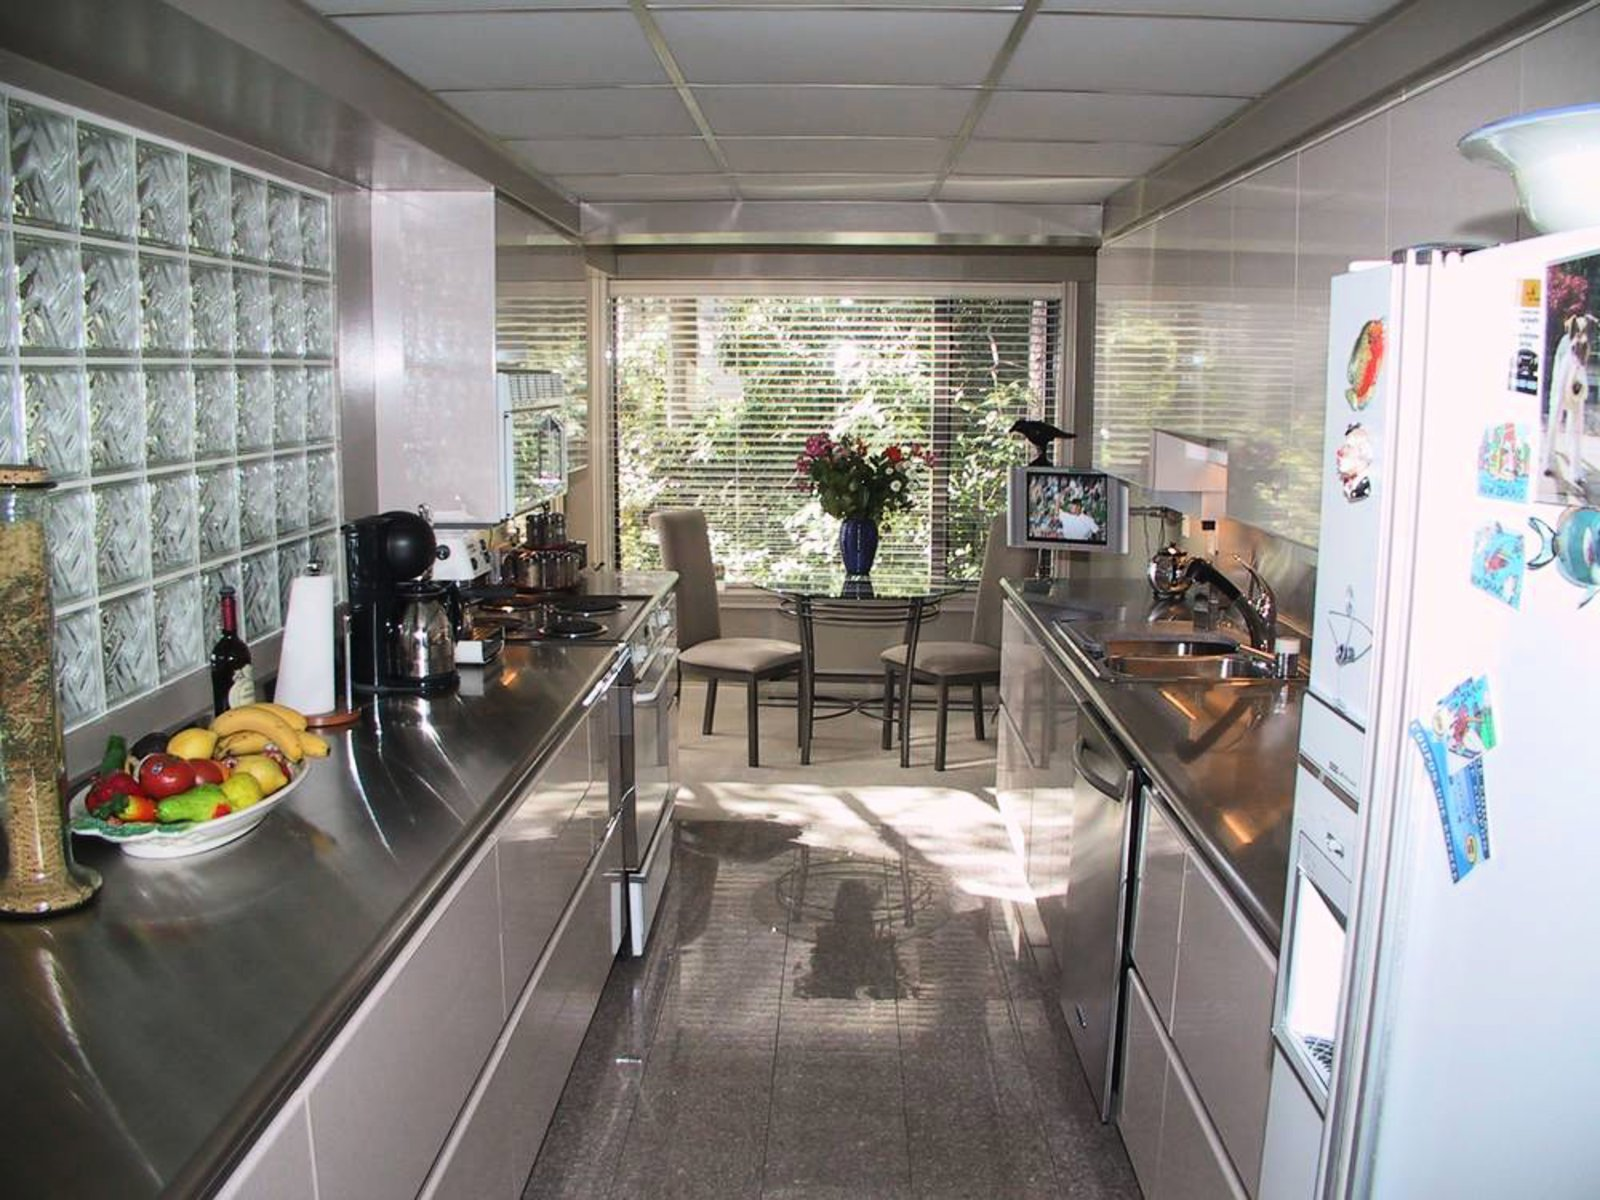 Kitchen Stainless Steel Appliances, newer appliances